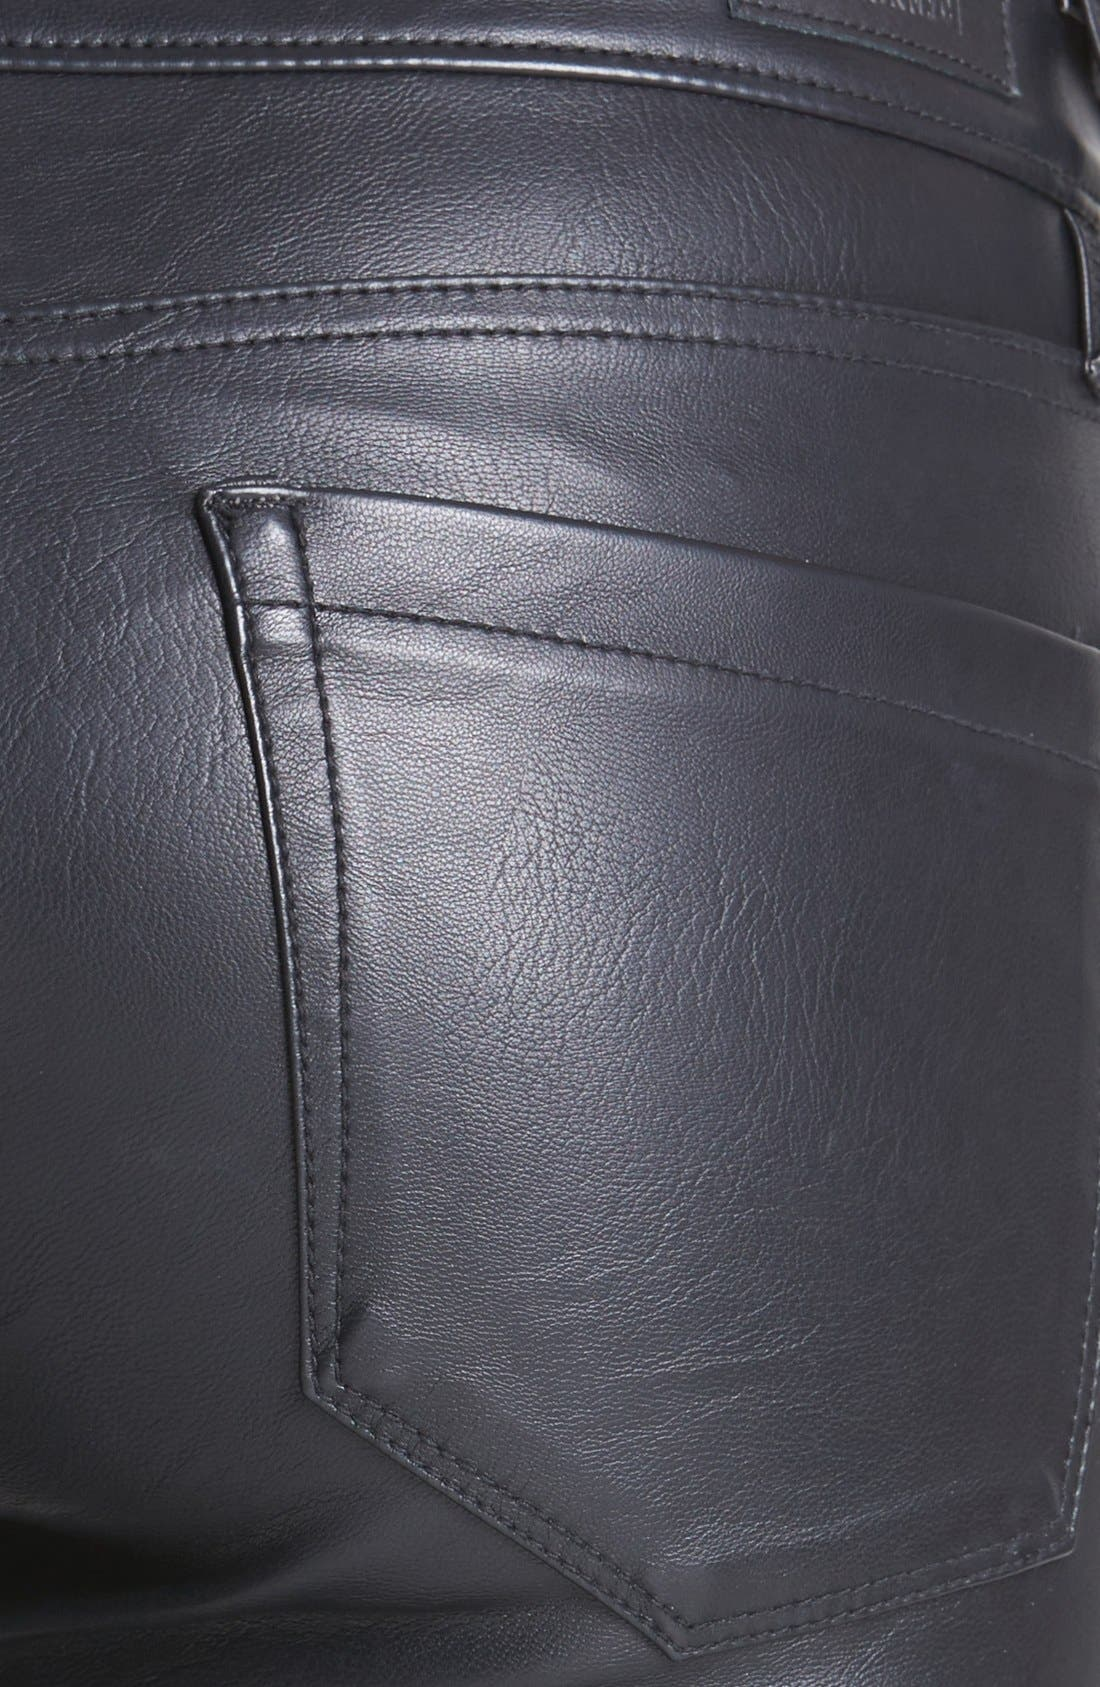 Faux Leather Skinny Pants,                             Alternate thumbnail 3, color,                             005